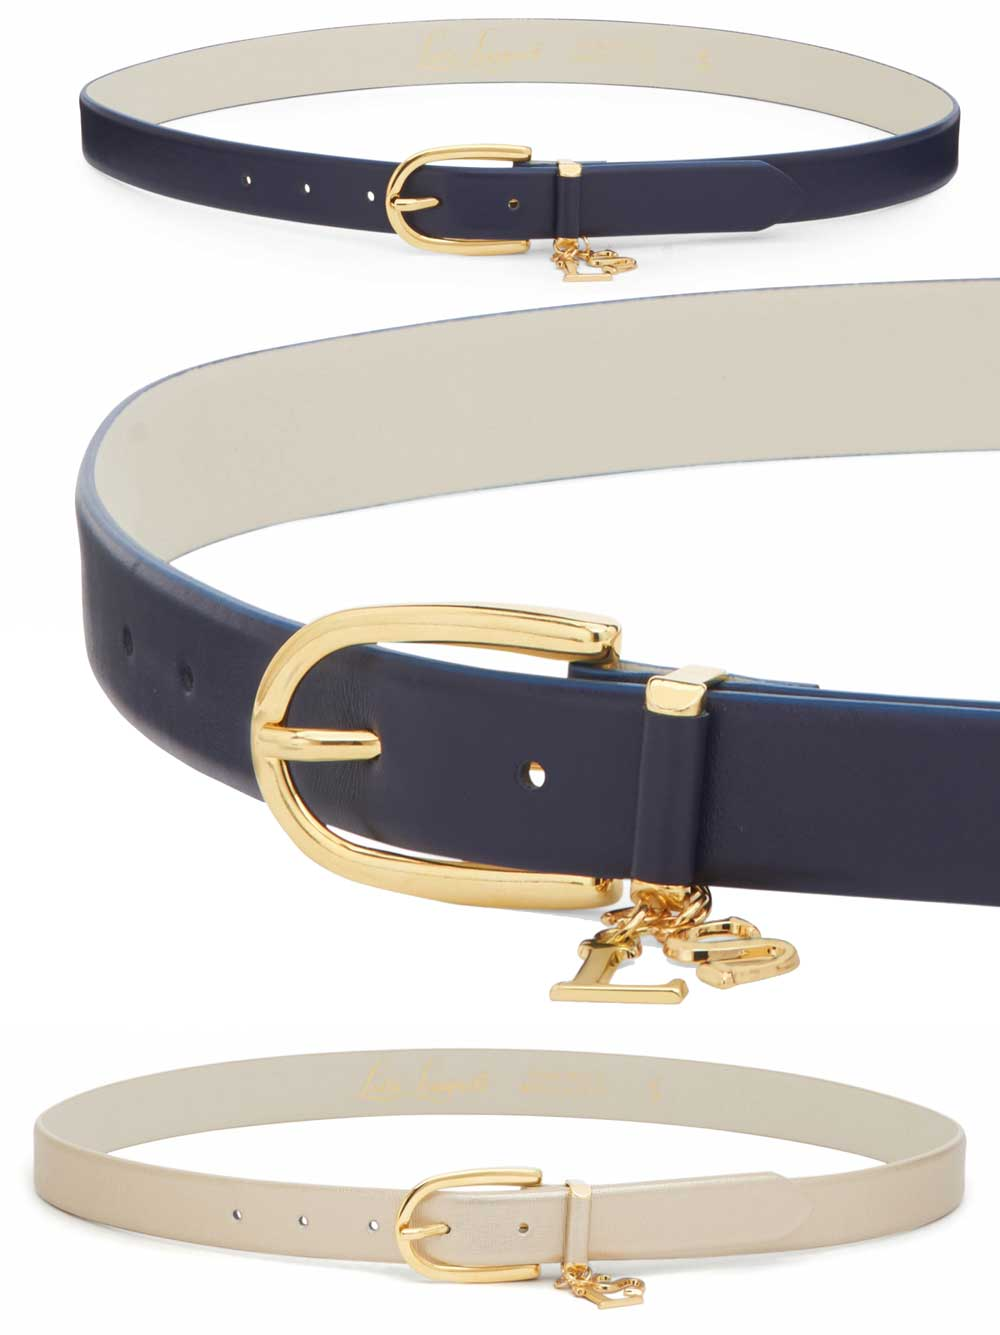 Belt with Luisa Spagnoli charms